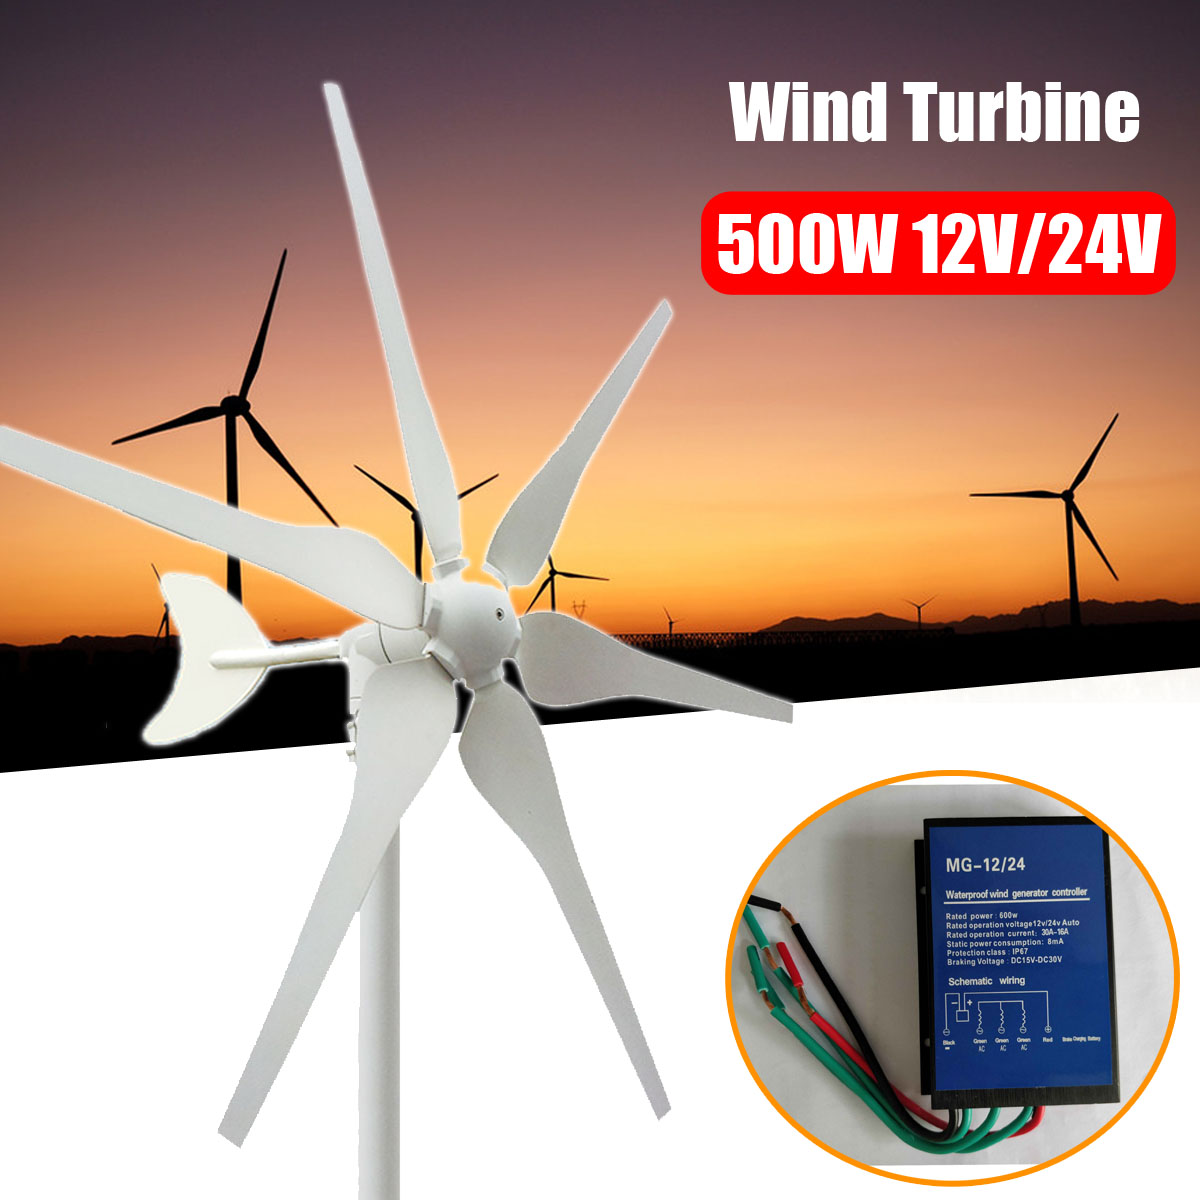 500w 12v 24v Environmental 6 Blades Mini Wind Turbines Energy Wiring Diagram Diagrams 3 Phase Turbine 1 X Kit Stents Is Not Included Manual